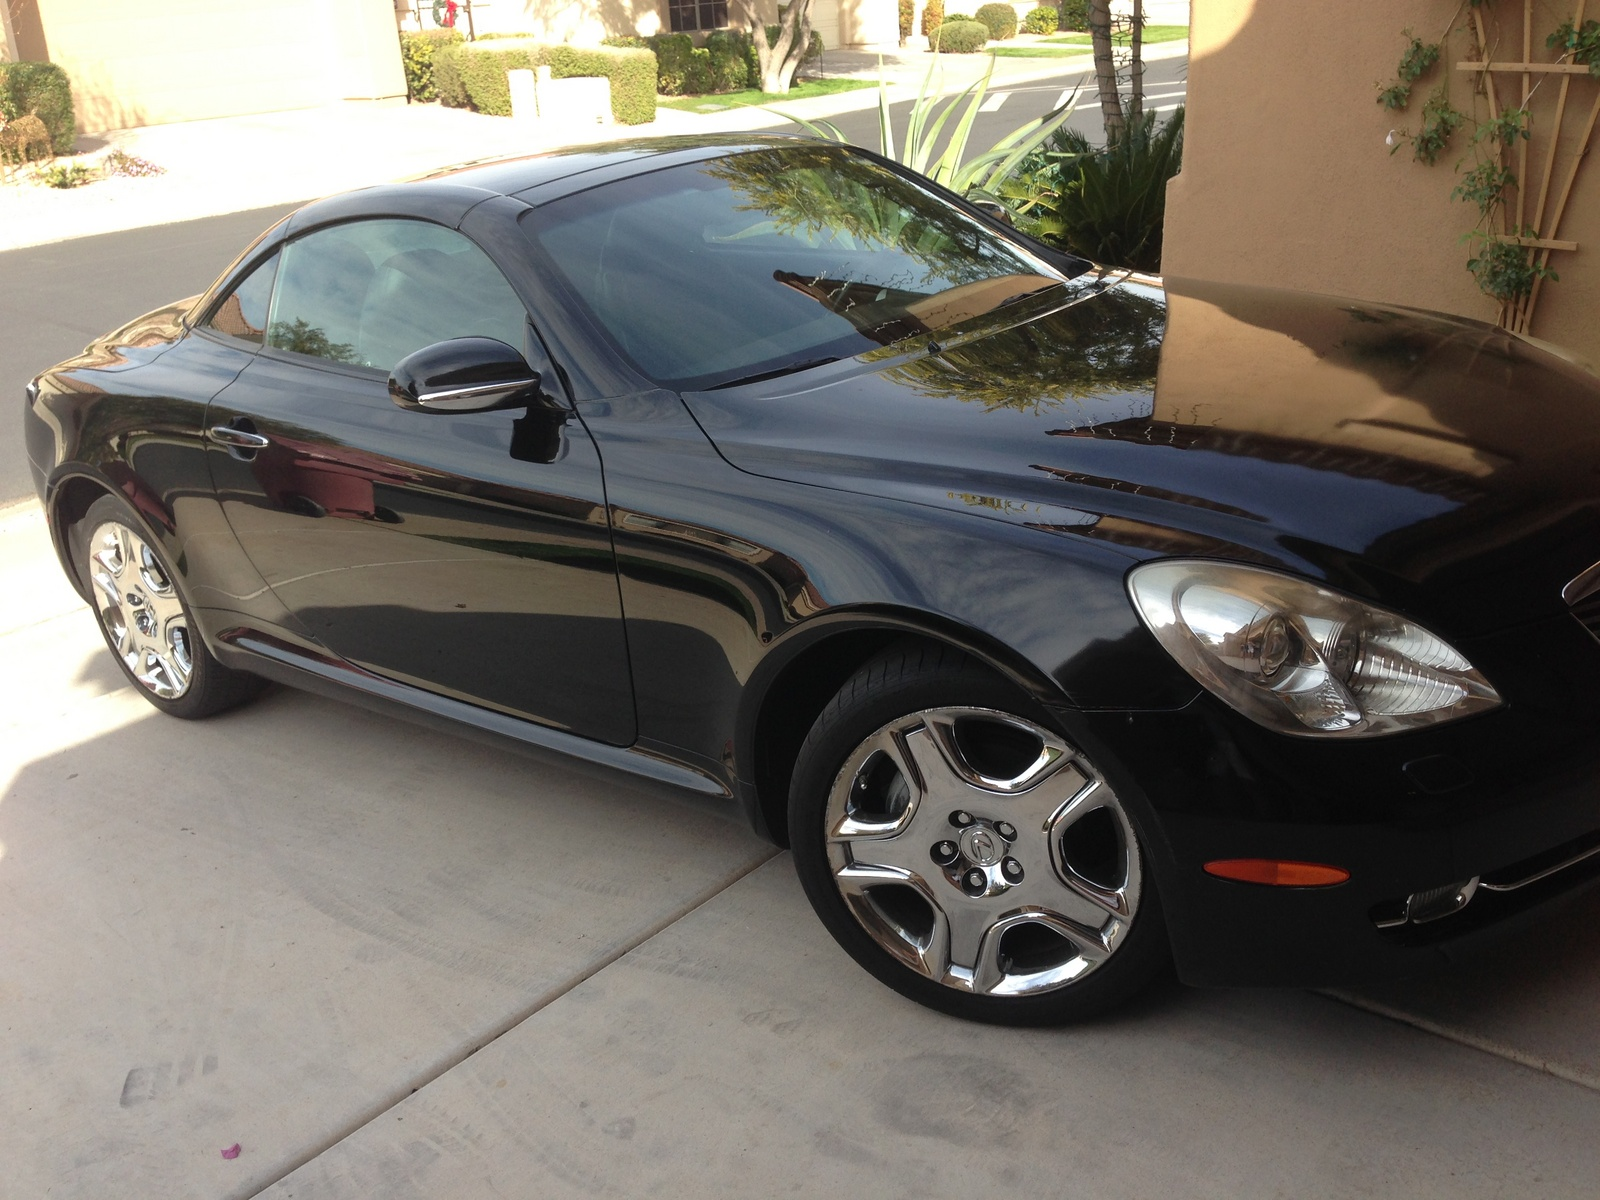 Lexus SC 430 2007 photo - 5